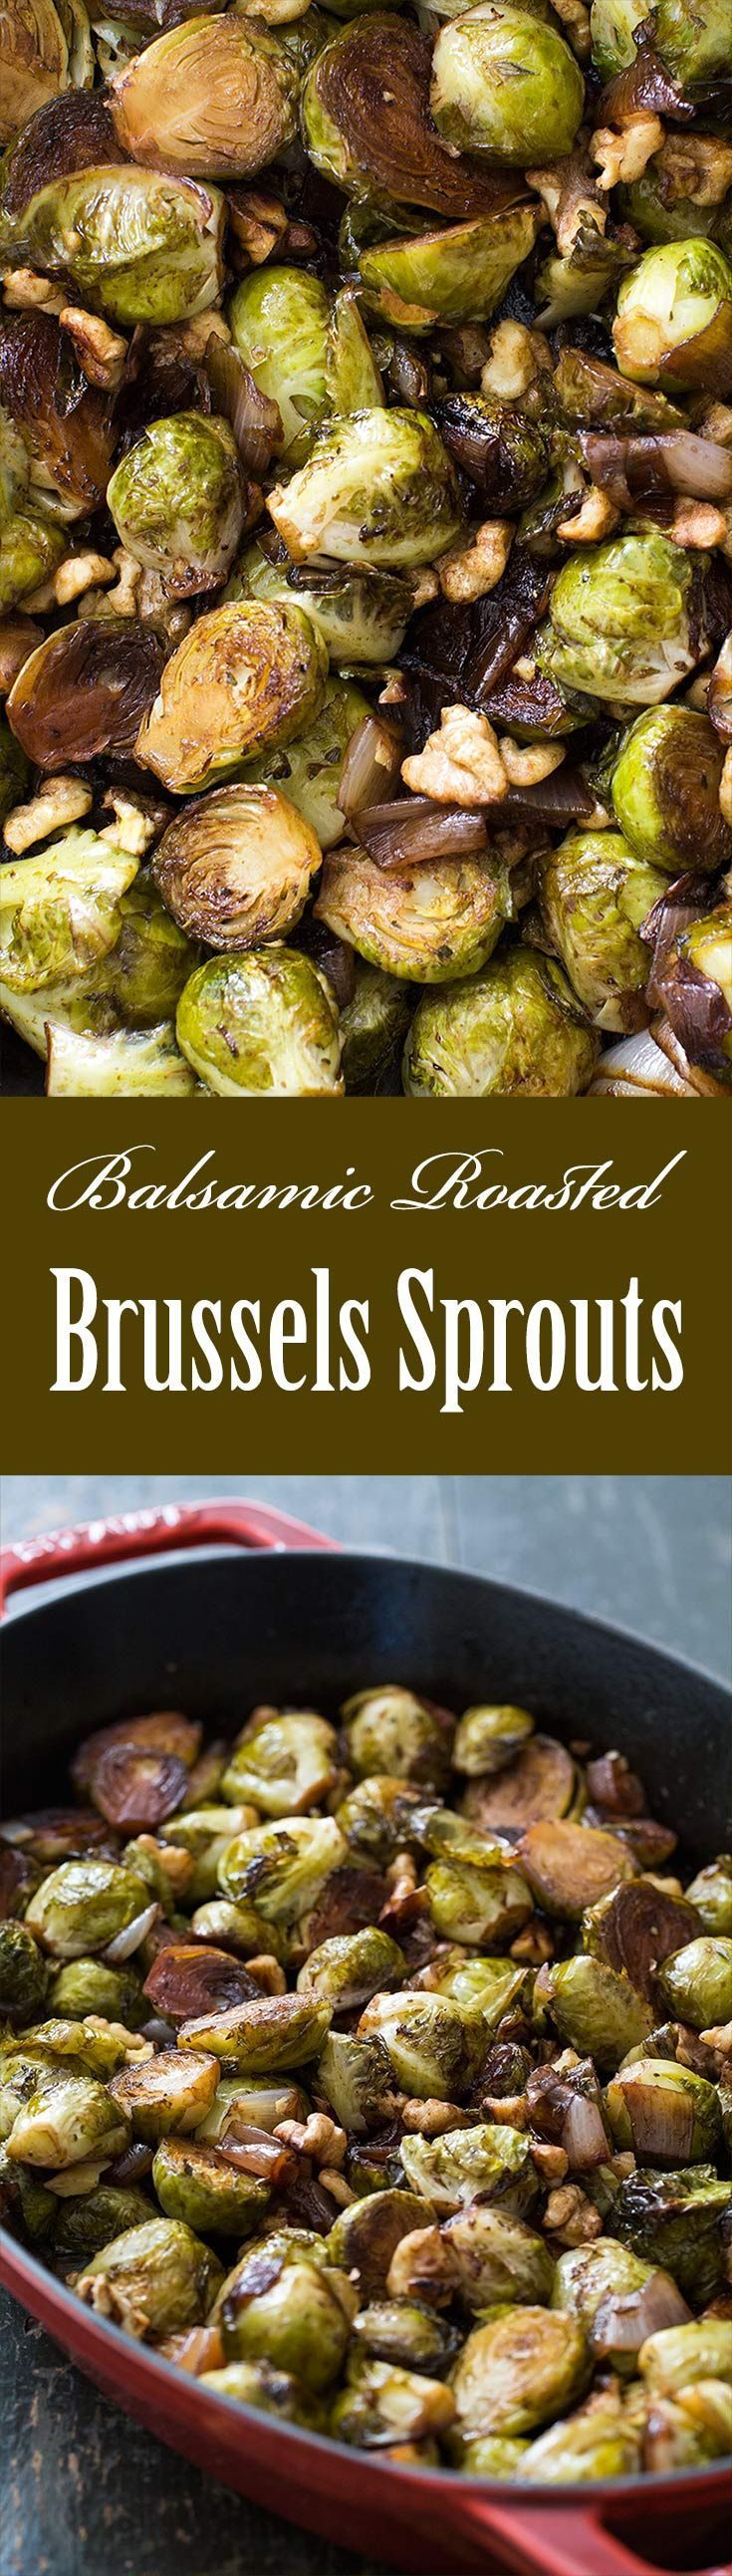 Easy! Brussels Sprouts roasted with shallots, tossed with balsamic vinegar and toasted walnuts. #vegan #Thanksgiving On http://SimplyRecipes.com